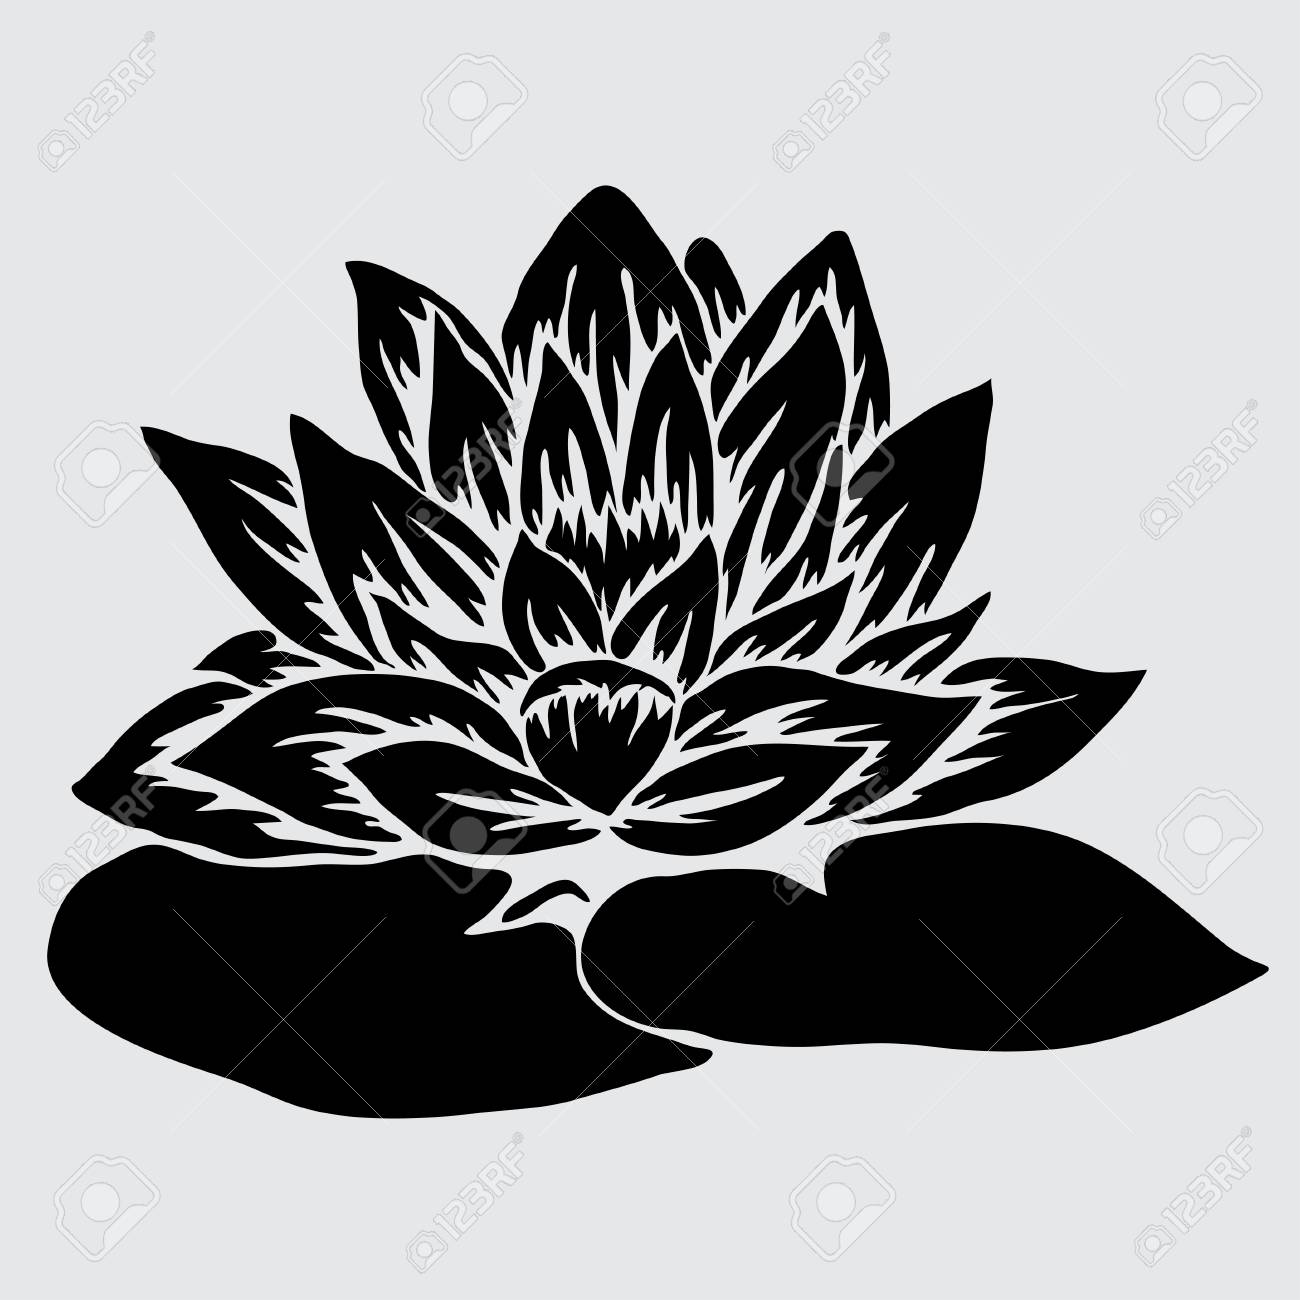 Elegant decorative lotus flower design element floral branch elegant decorative lotus flower design element floral branch stock vector 30301750 izmirmasajfo